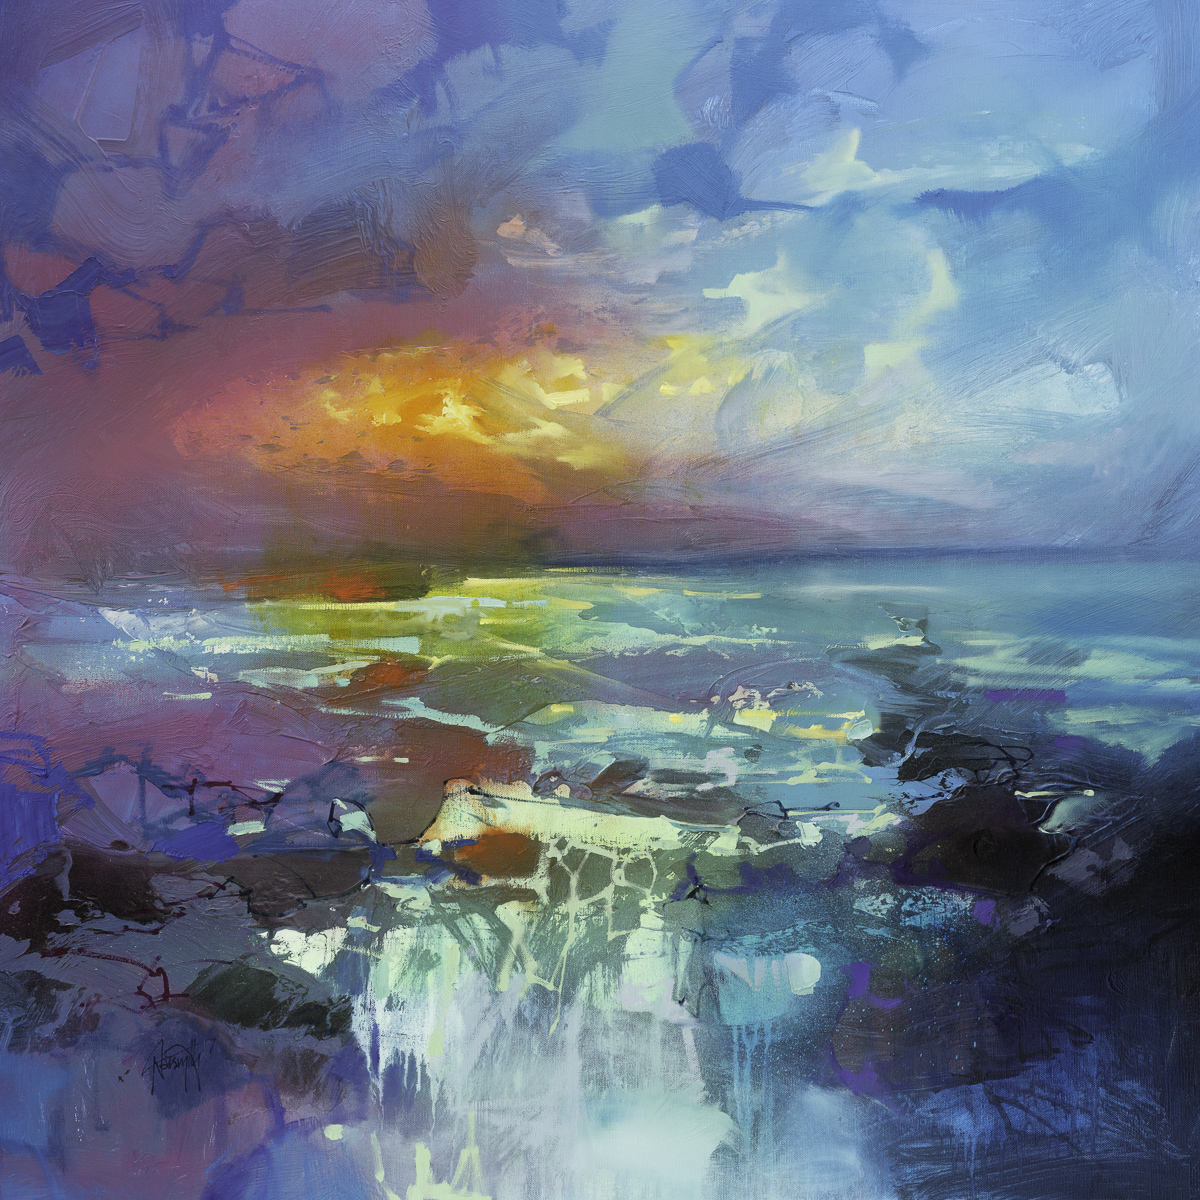 Fleeting Glow by Scott Naismith